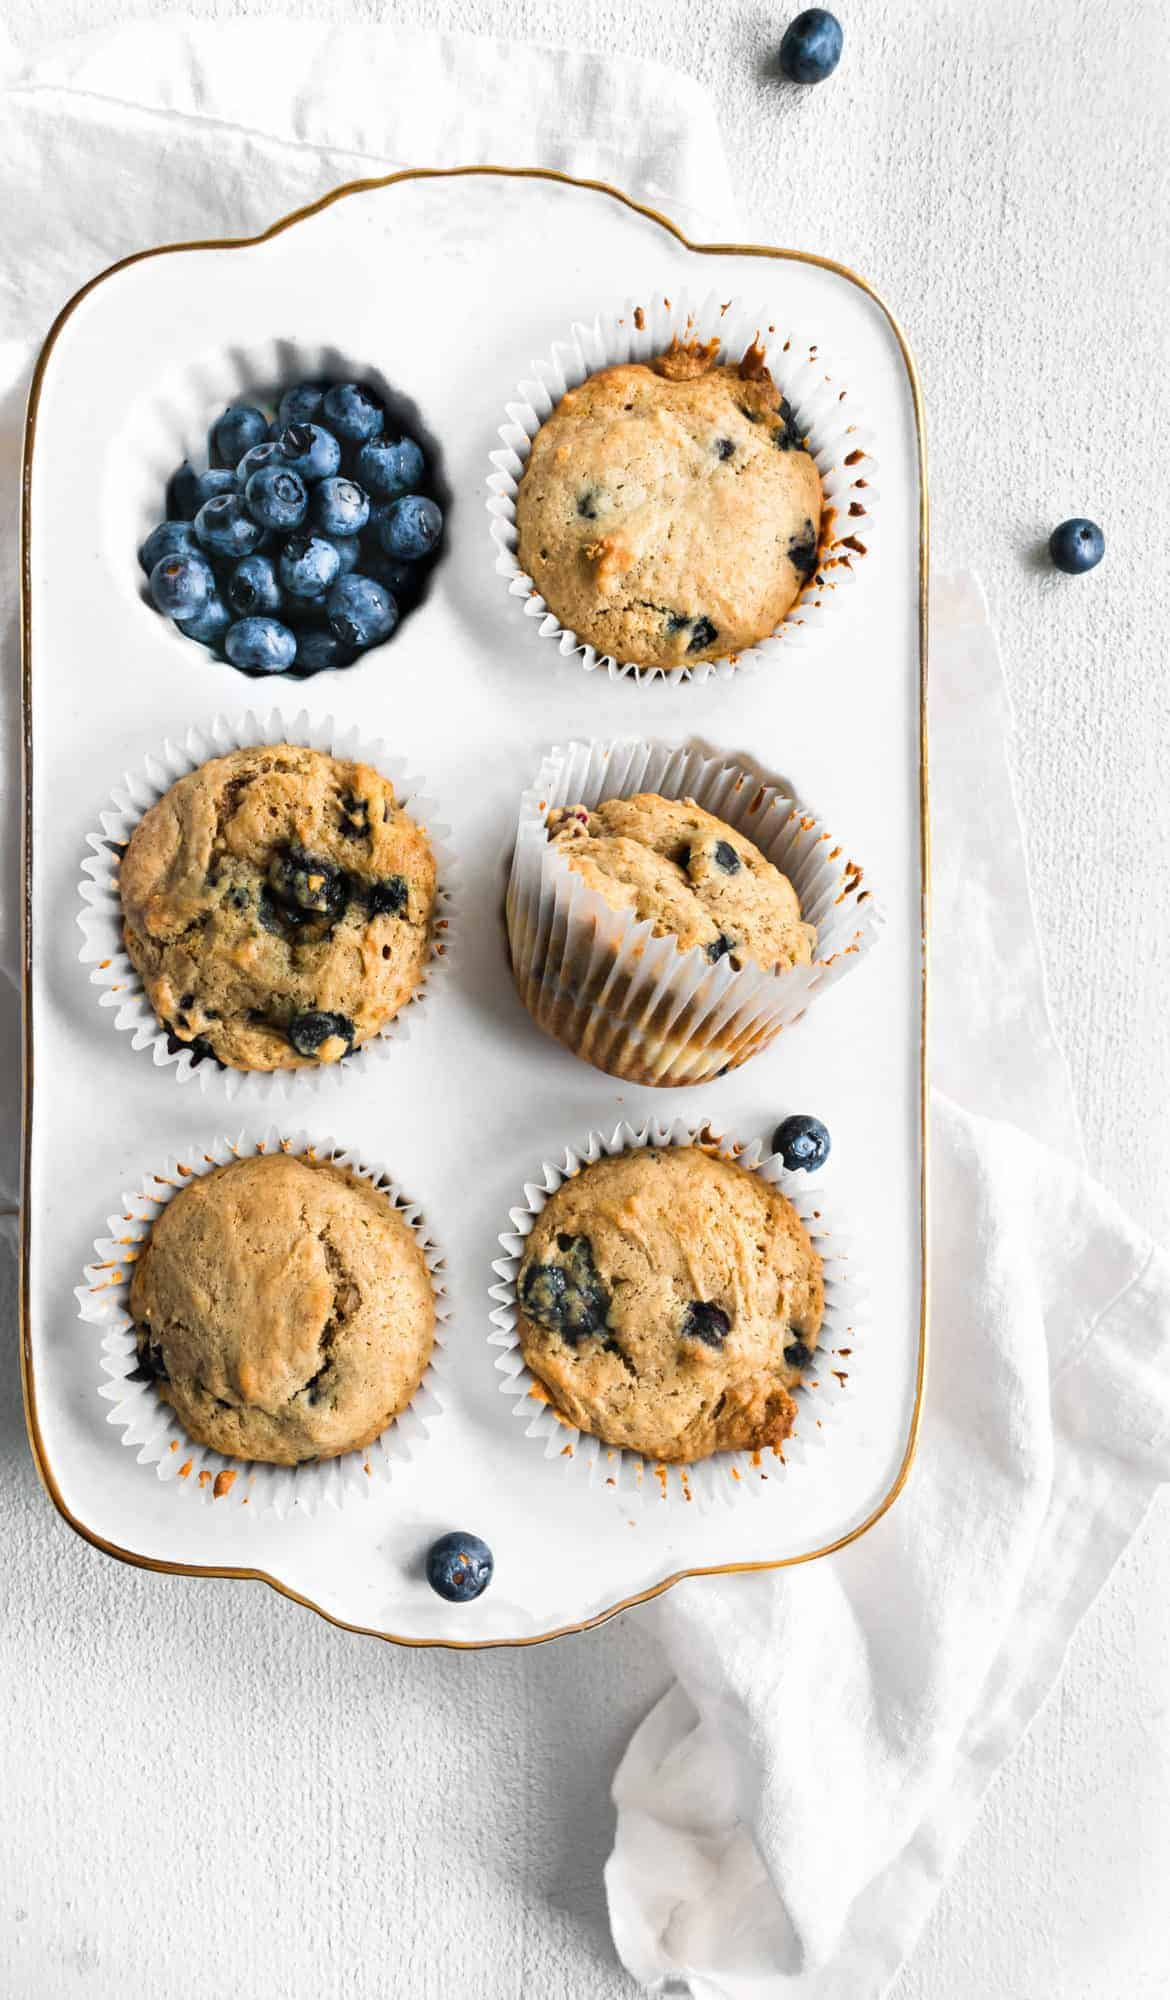 cooked muffins in muffin tin with blueberries